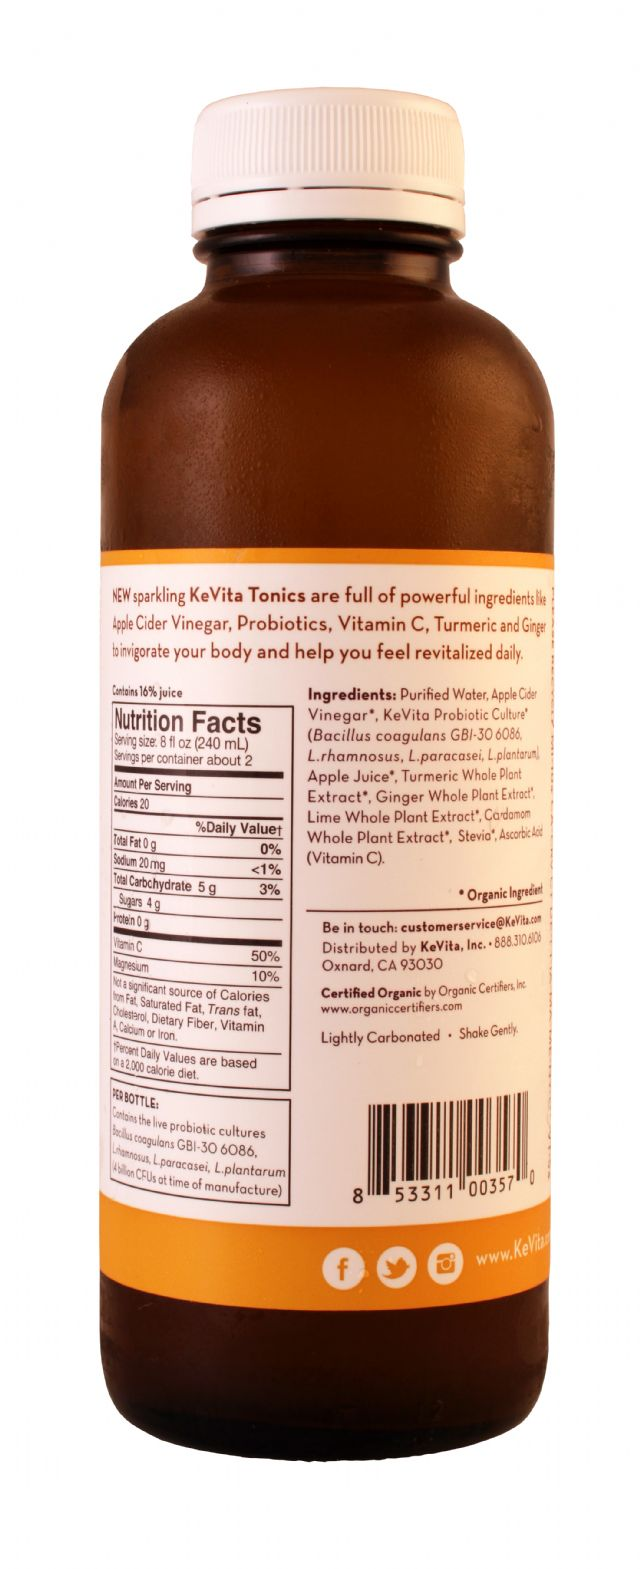 KeVita Tonics: KevitaTonics TumericGinger Facts